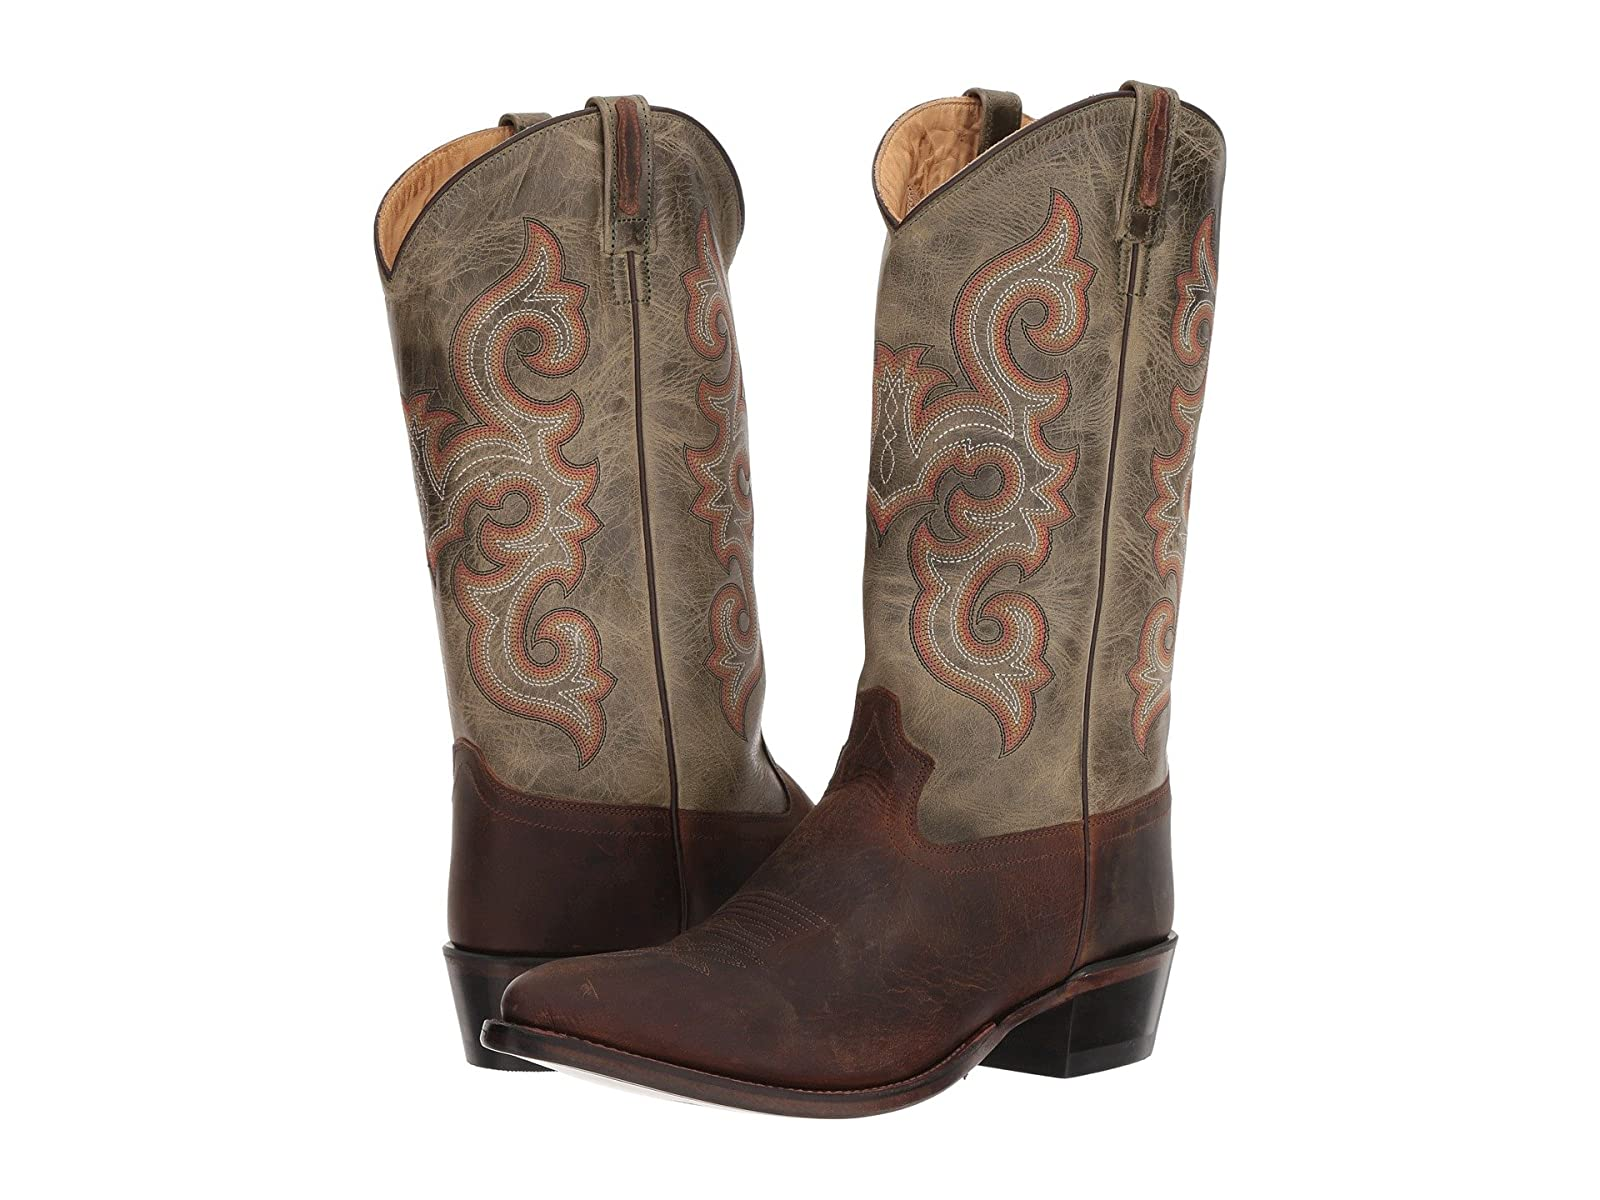 Old West Boots 5506Economical and quality shoes